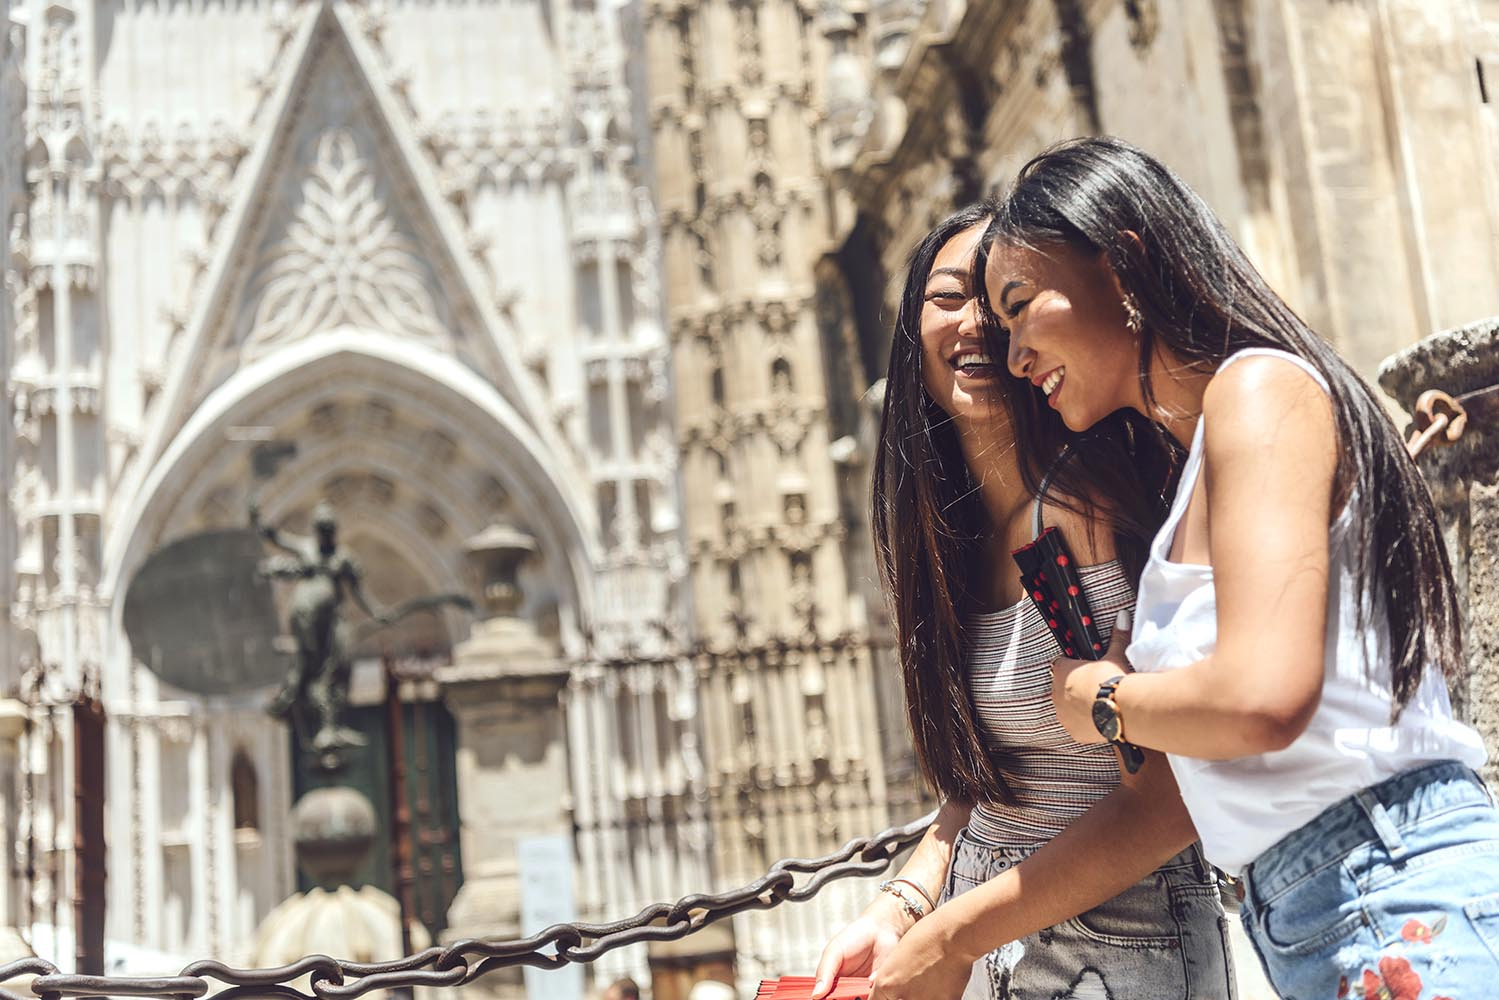 Chinese women smiling walking by cathedral